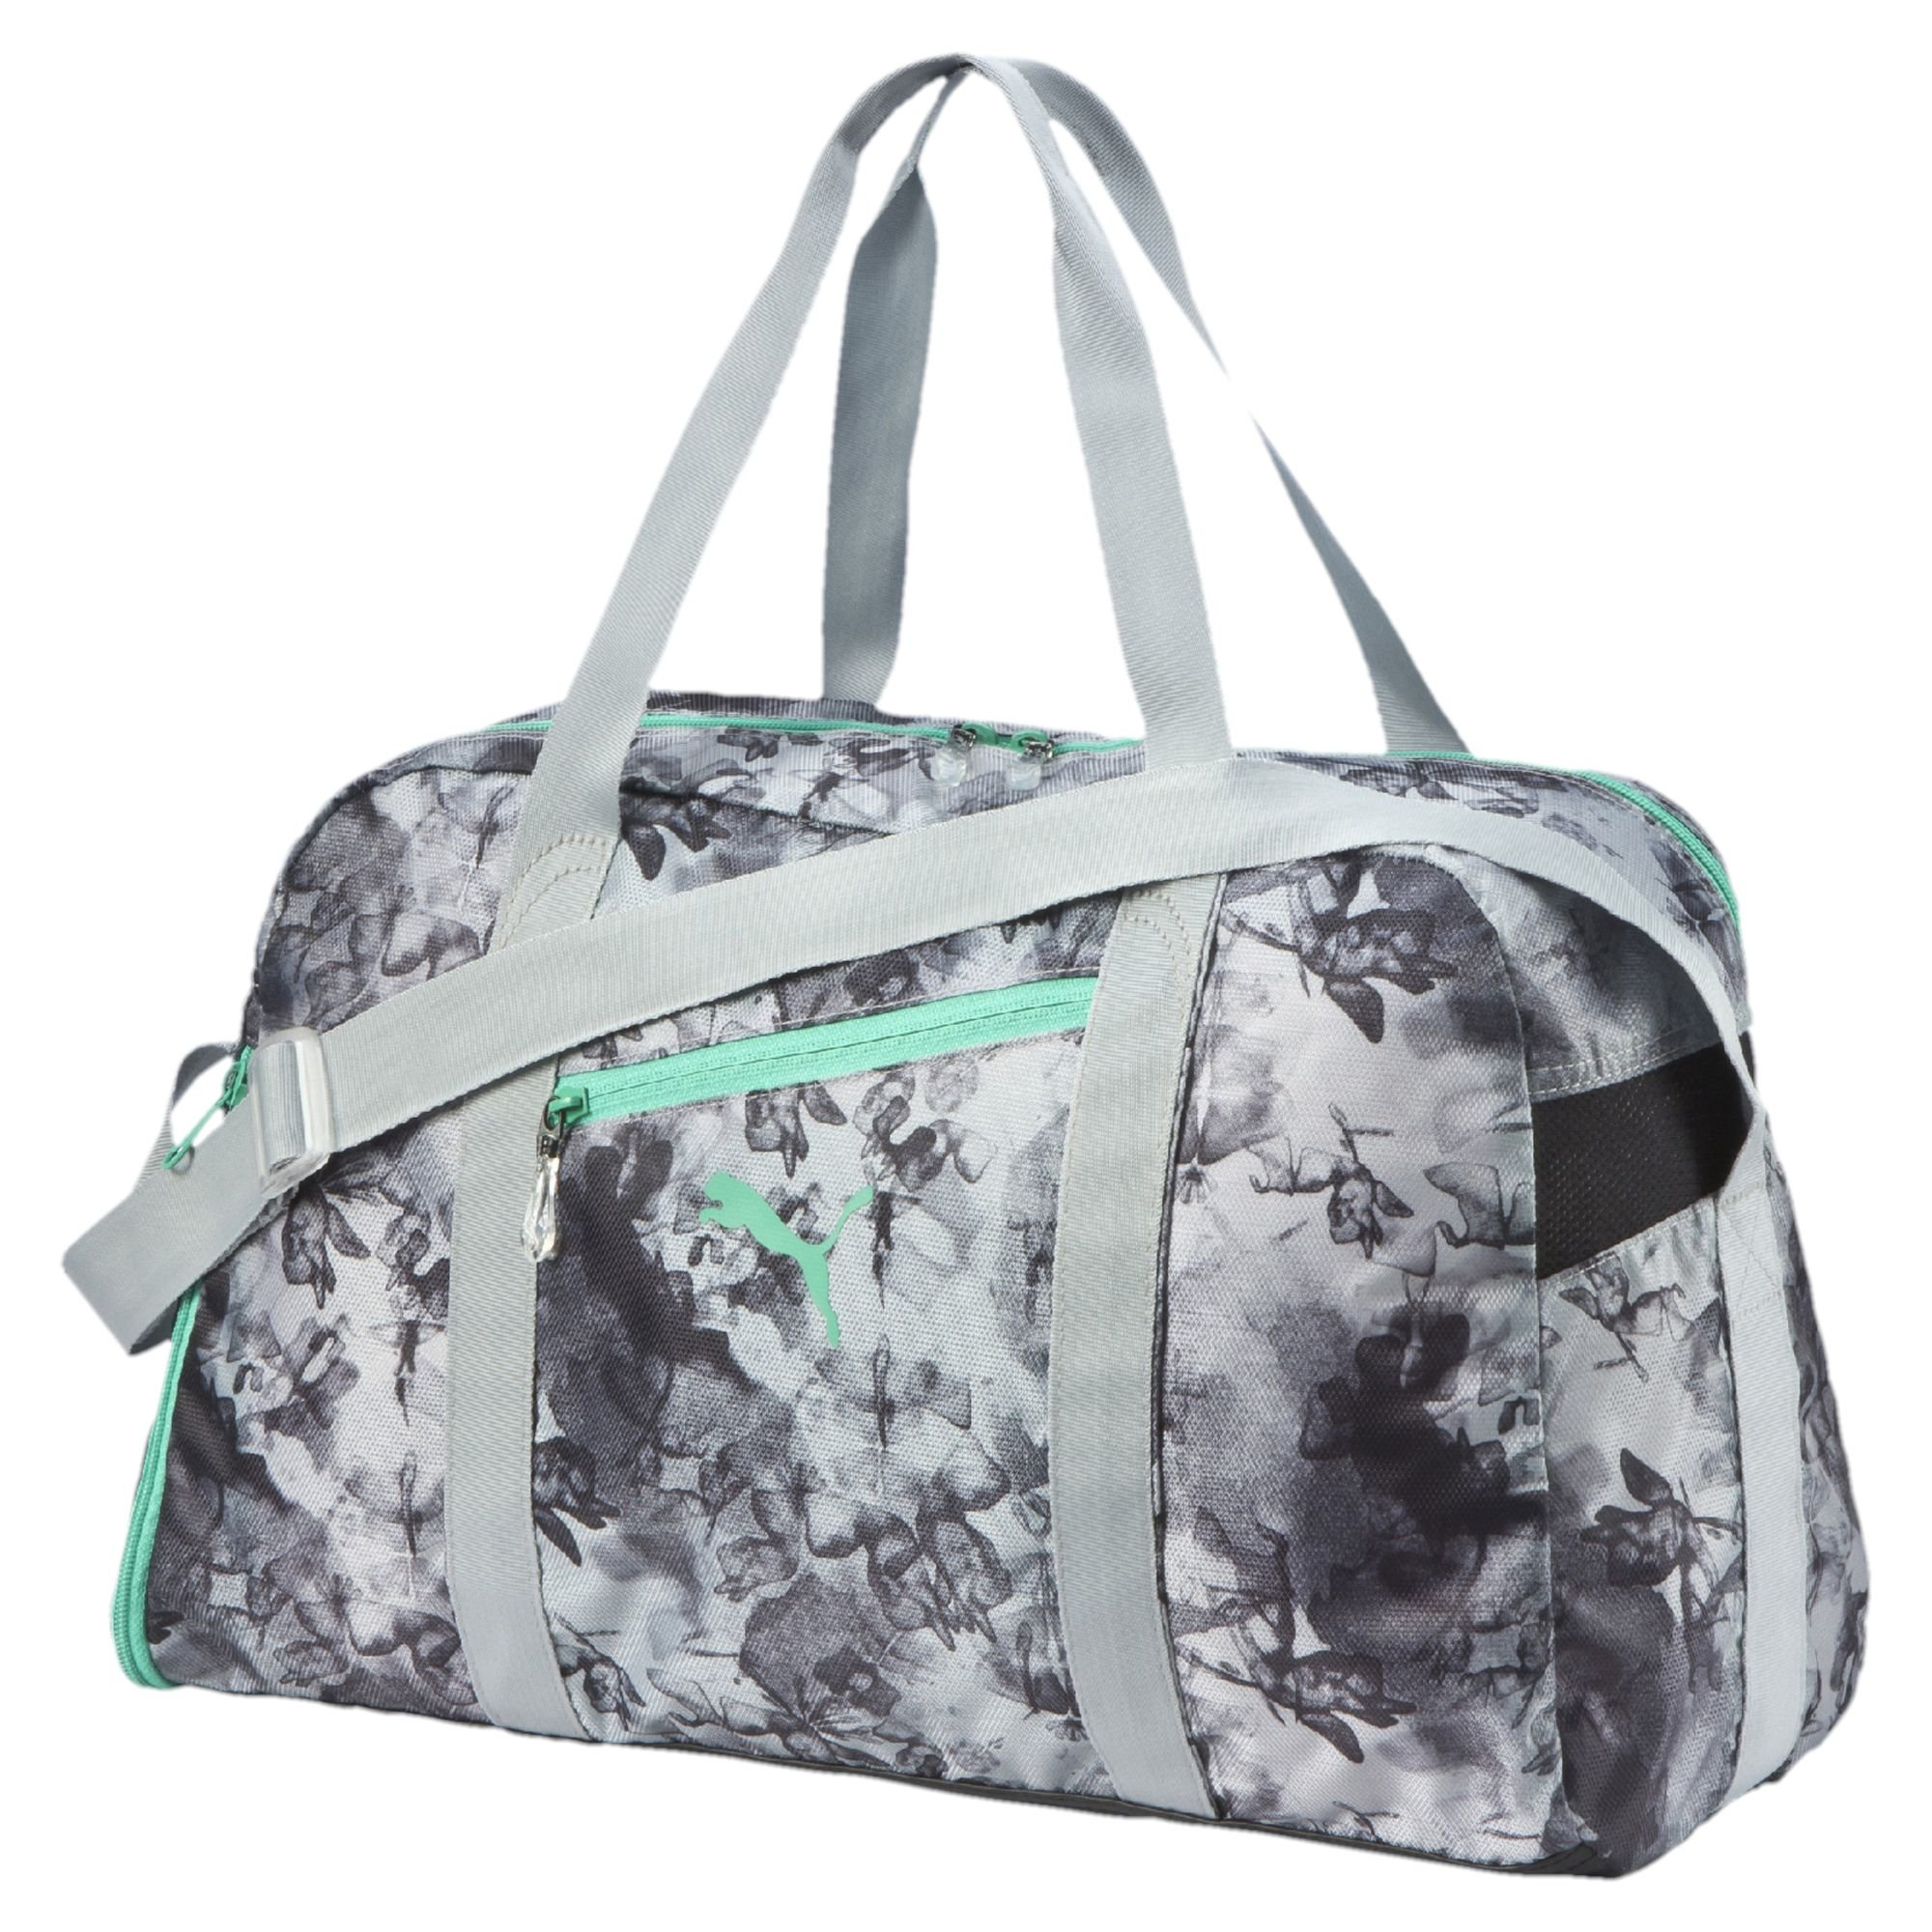 cf2e55fc759a Lyst - PUMA Fit At Sports Duffel Bag in Gray